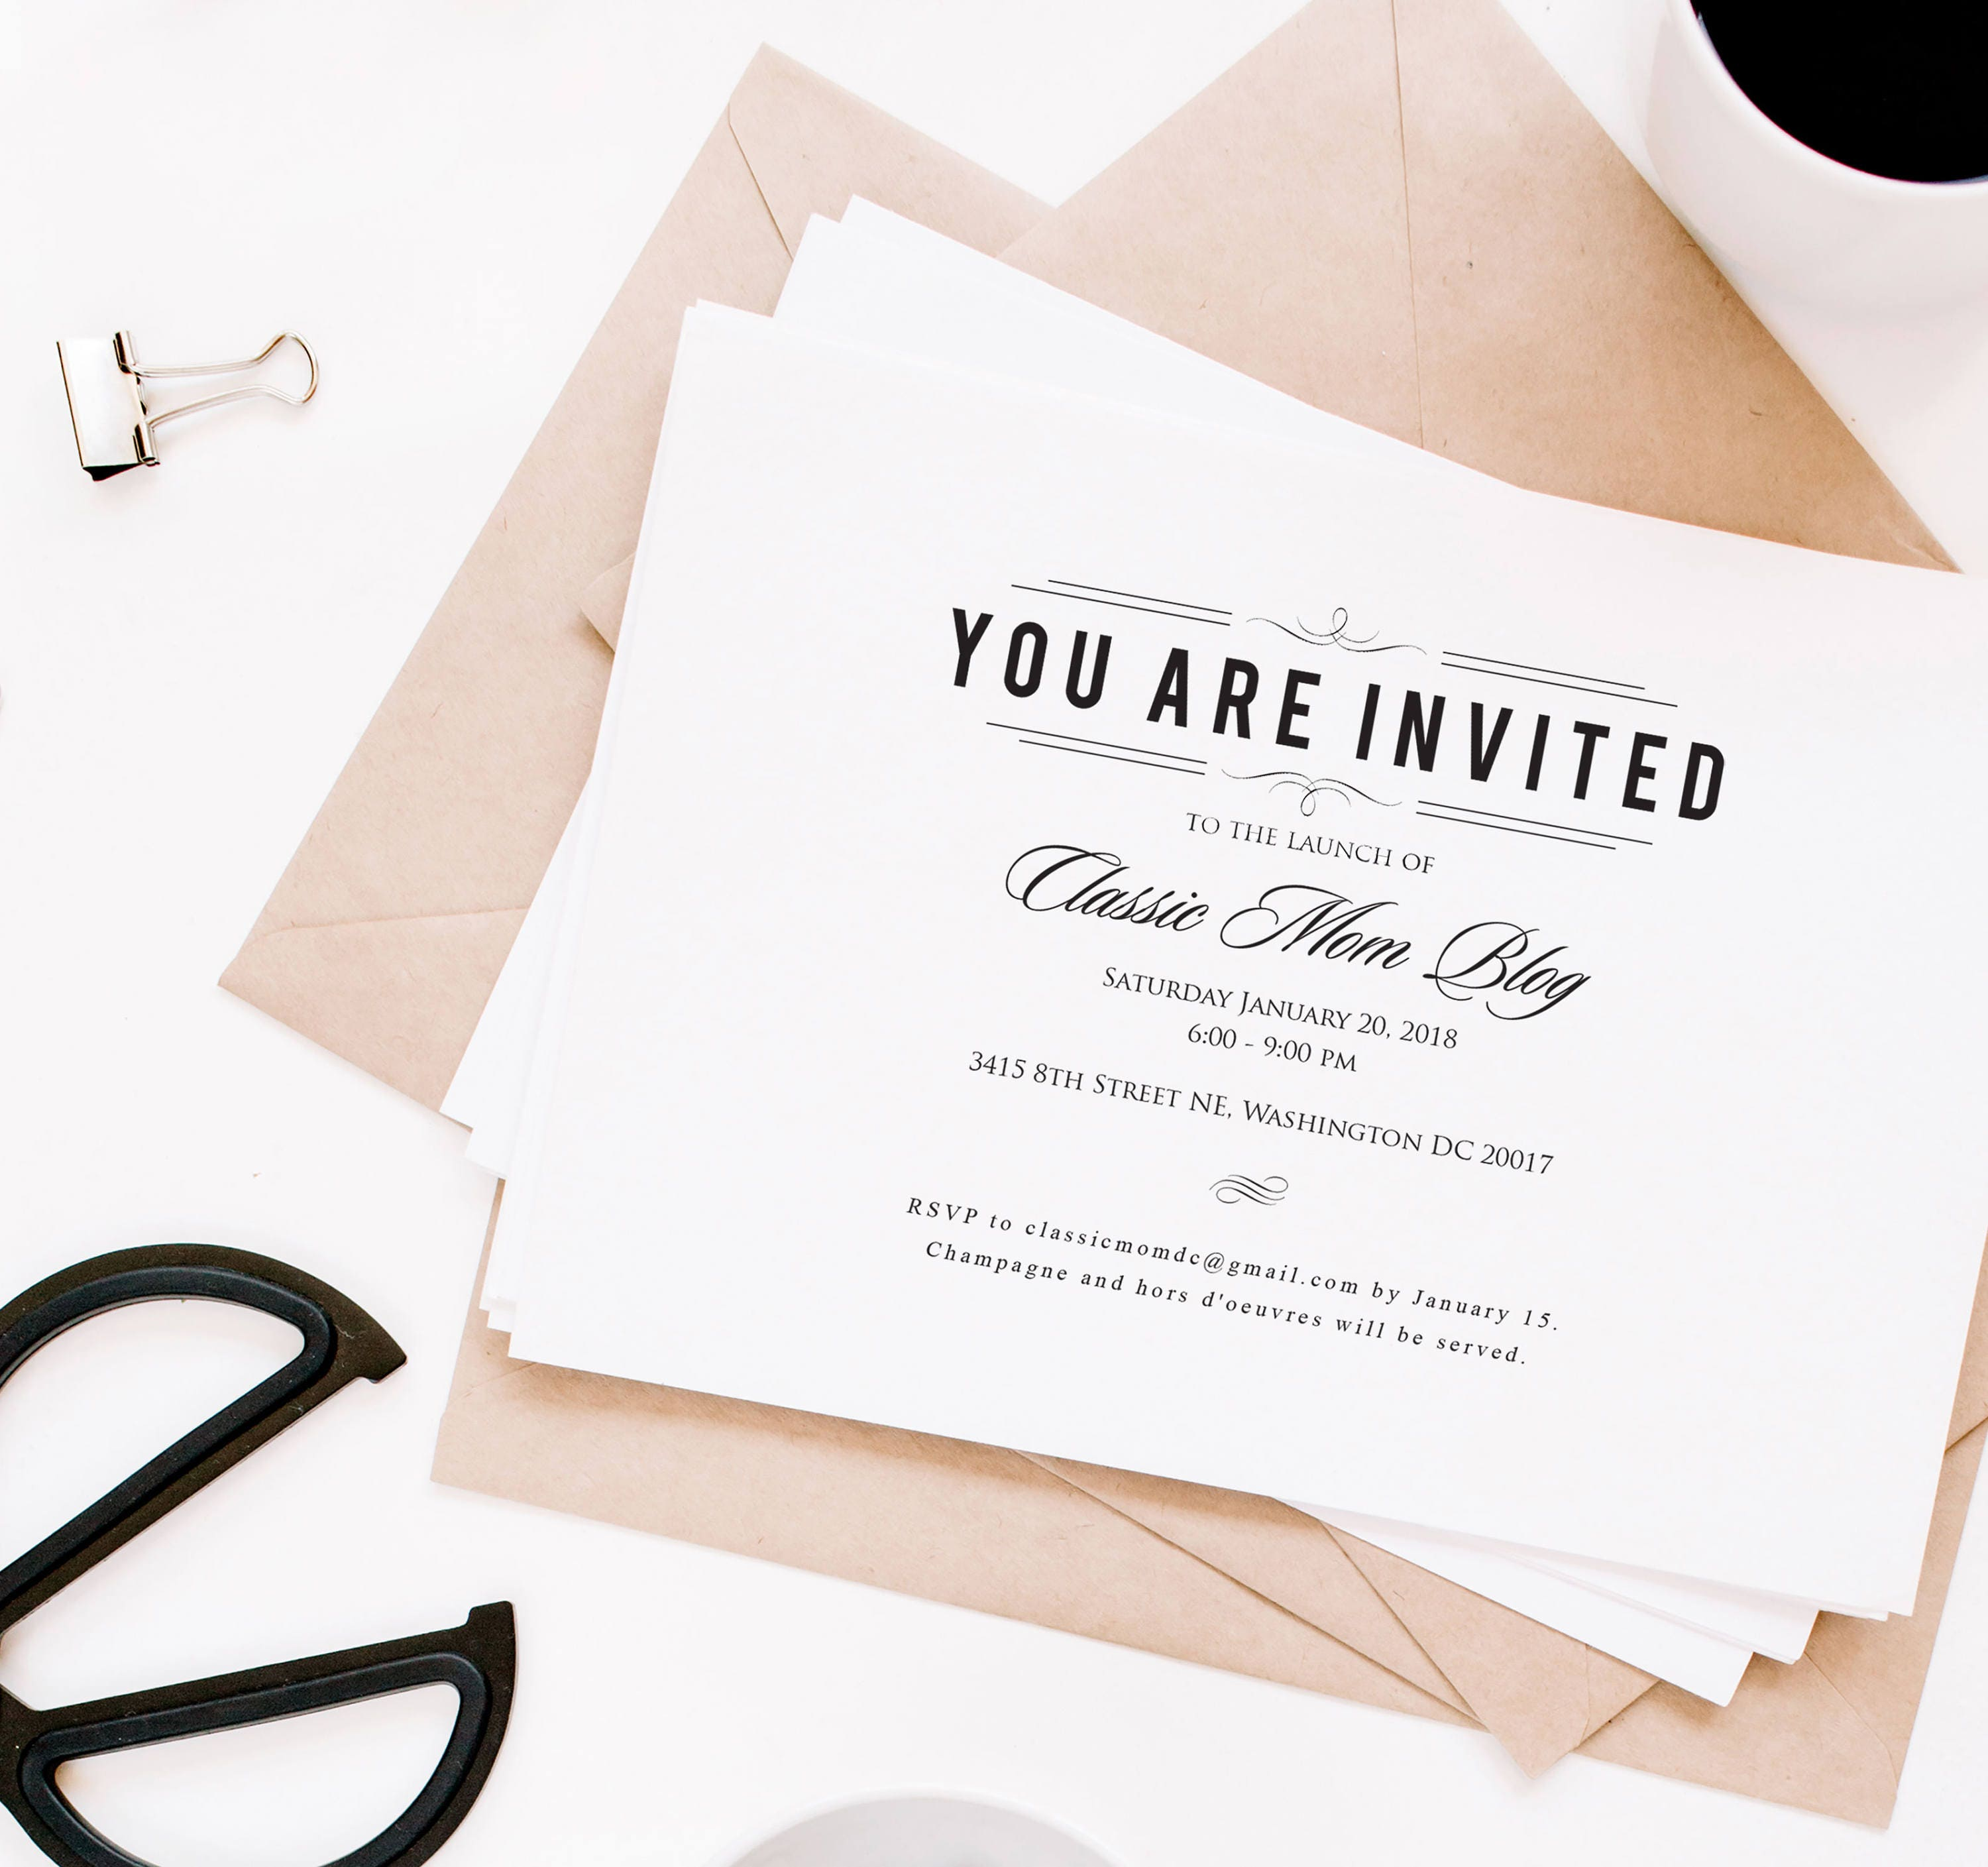 rehearsal dinner invitations formal invites charity event